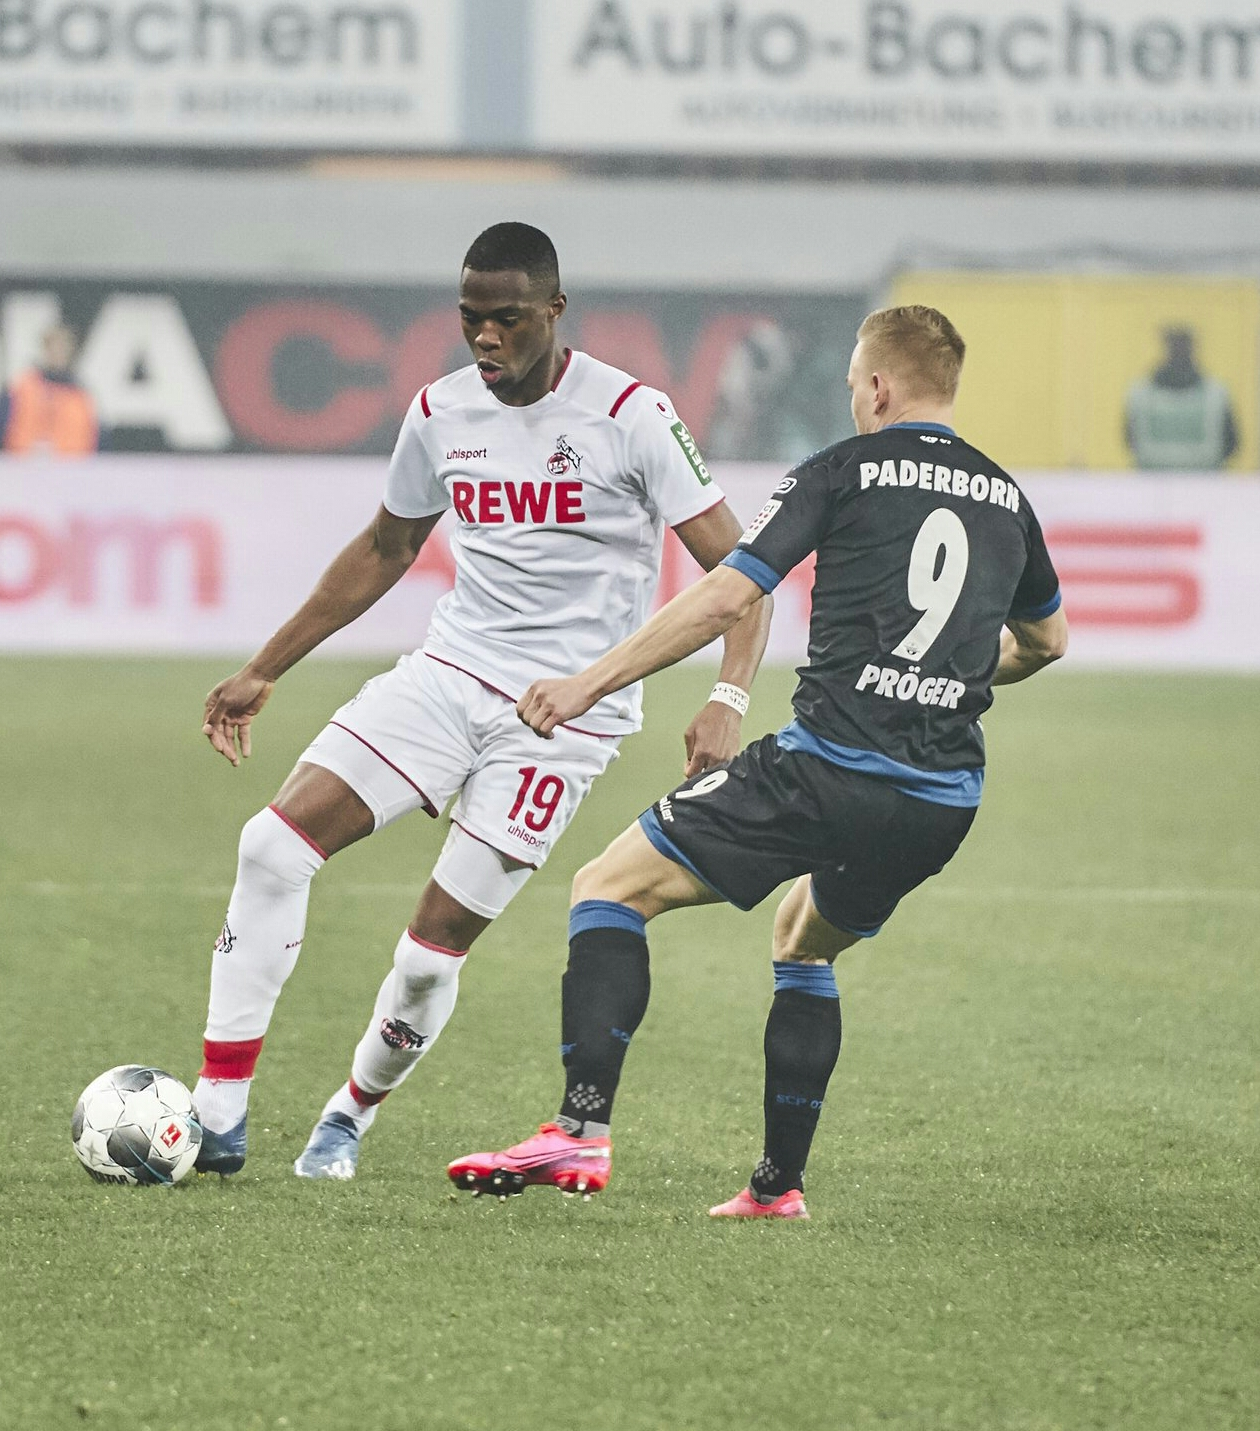 Bundesliga: Ehizibue Subbed On As Cologne Suffer Home Defeat In Opener